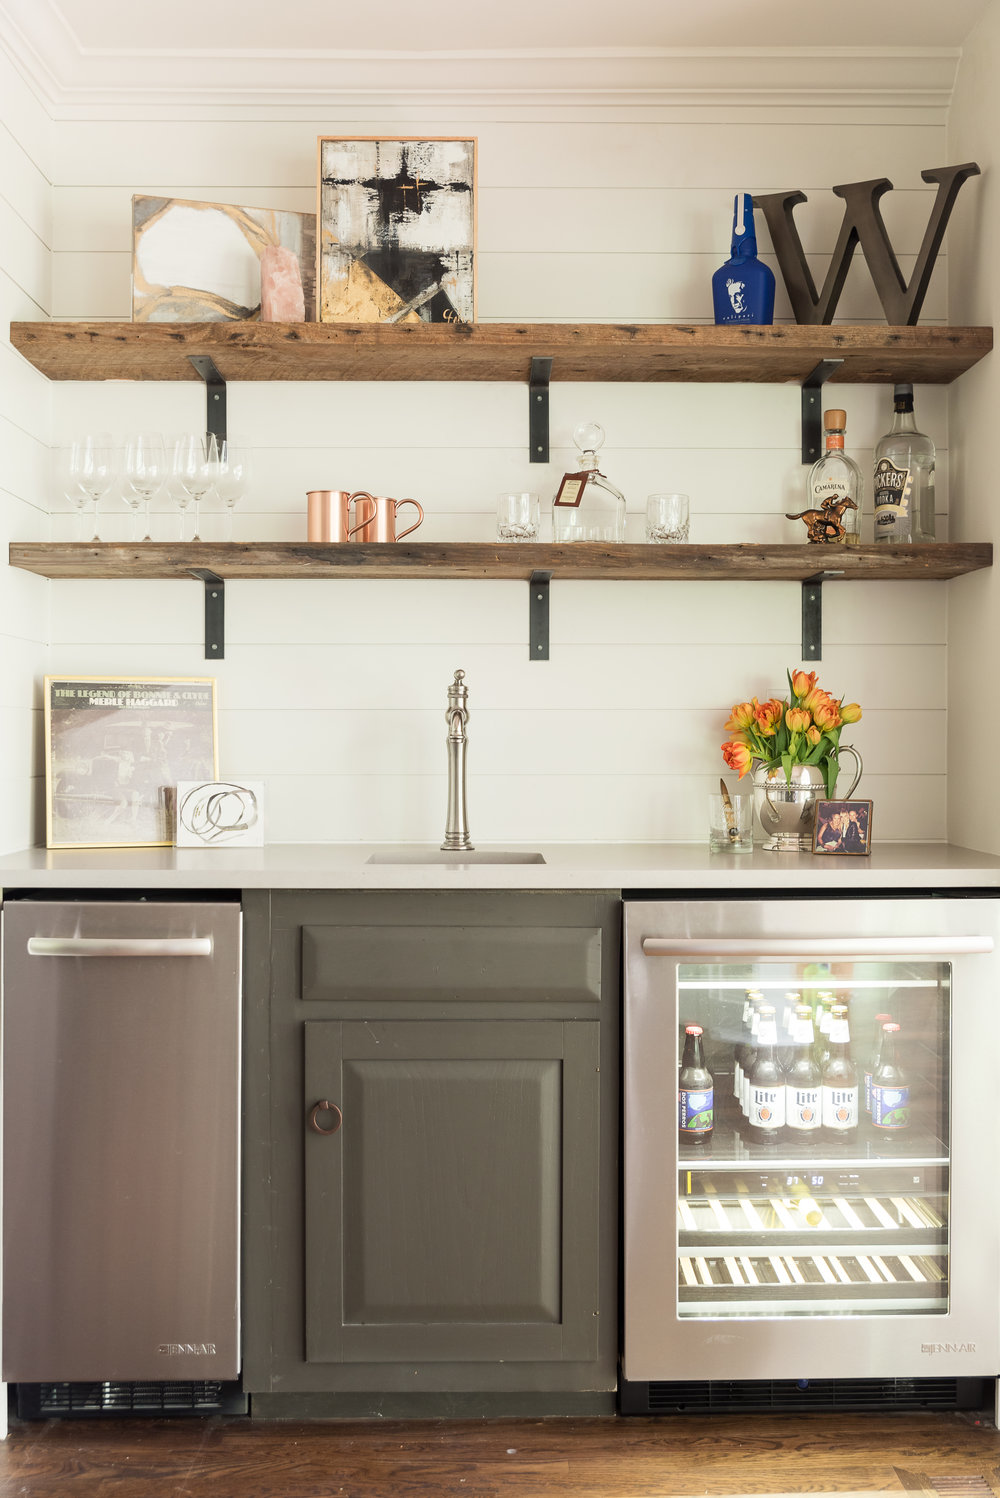 we repurposed a cabinet to build the bar and the same salvaged wood that we used in the kitchen.